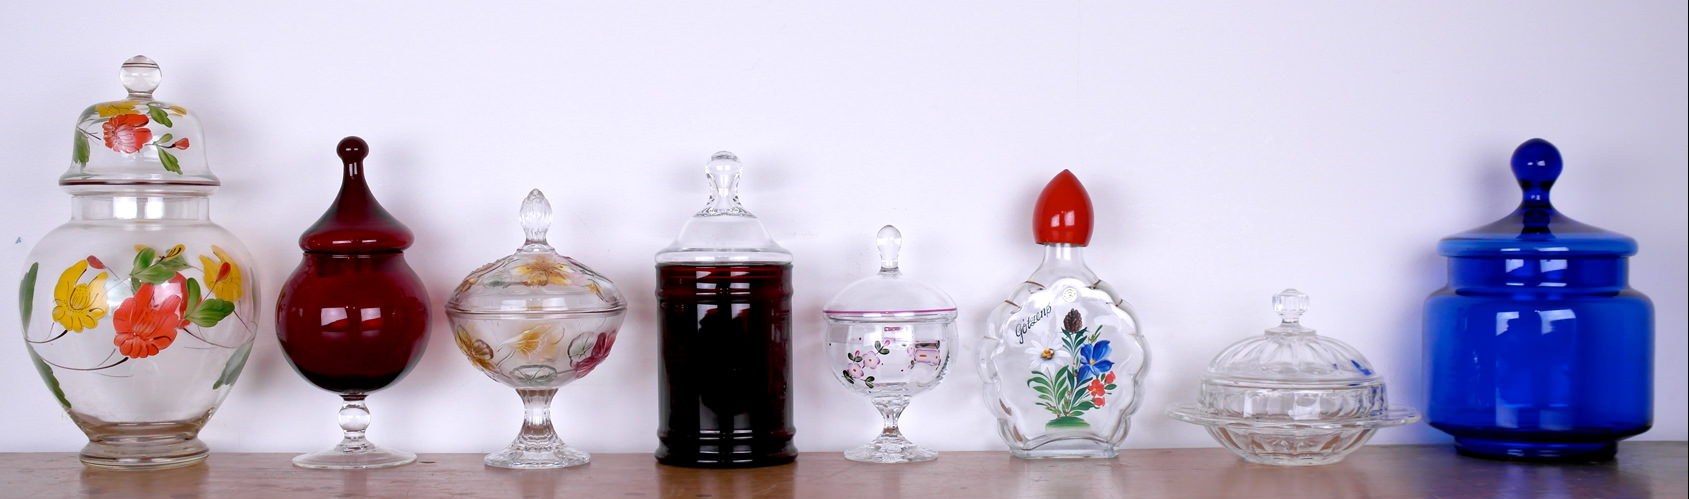 Vintage glass jars and dishes